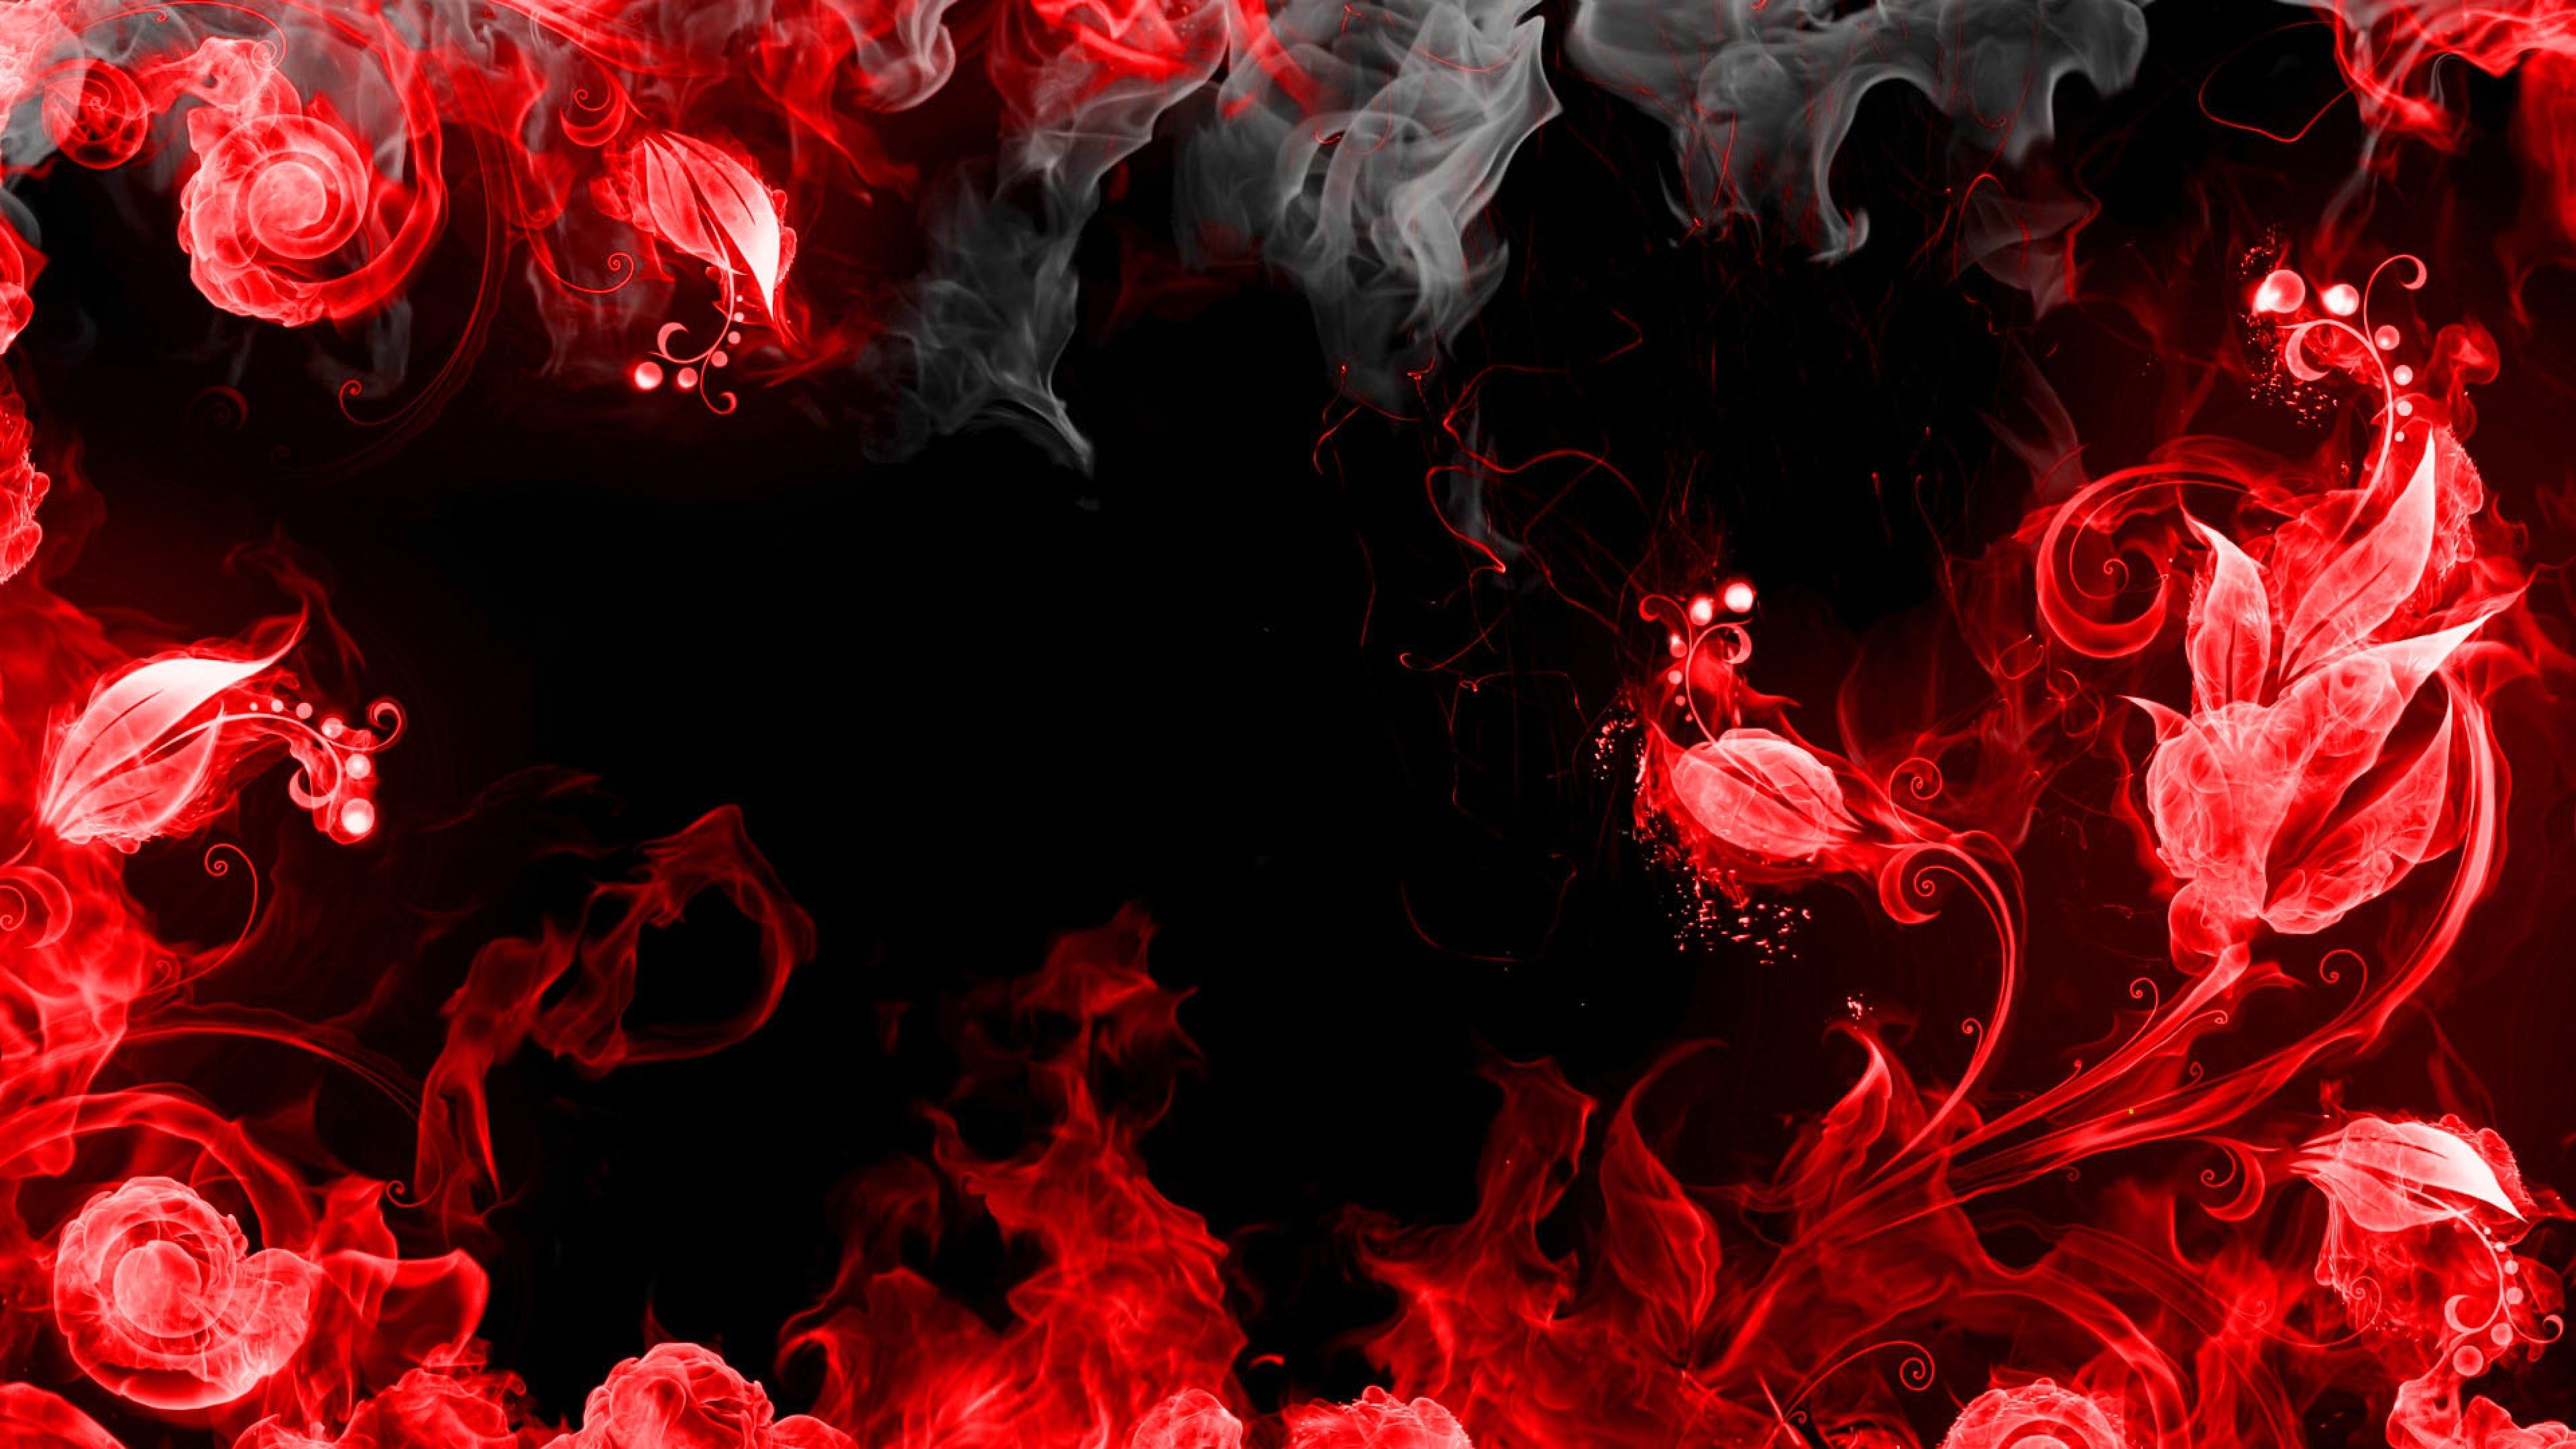 Download Wallpaper abstraction, red, smoke, black 4K Ultra .